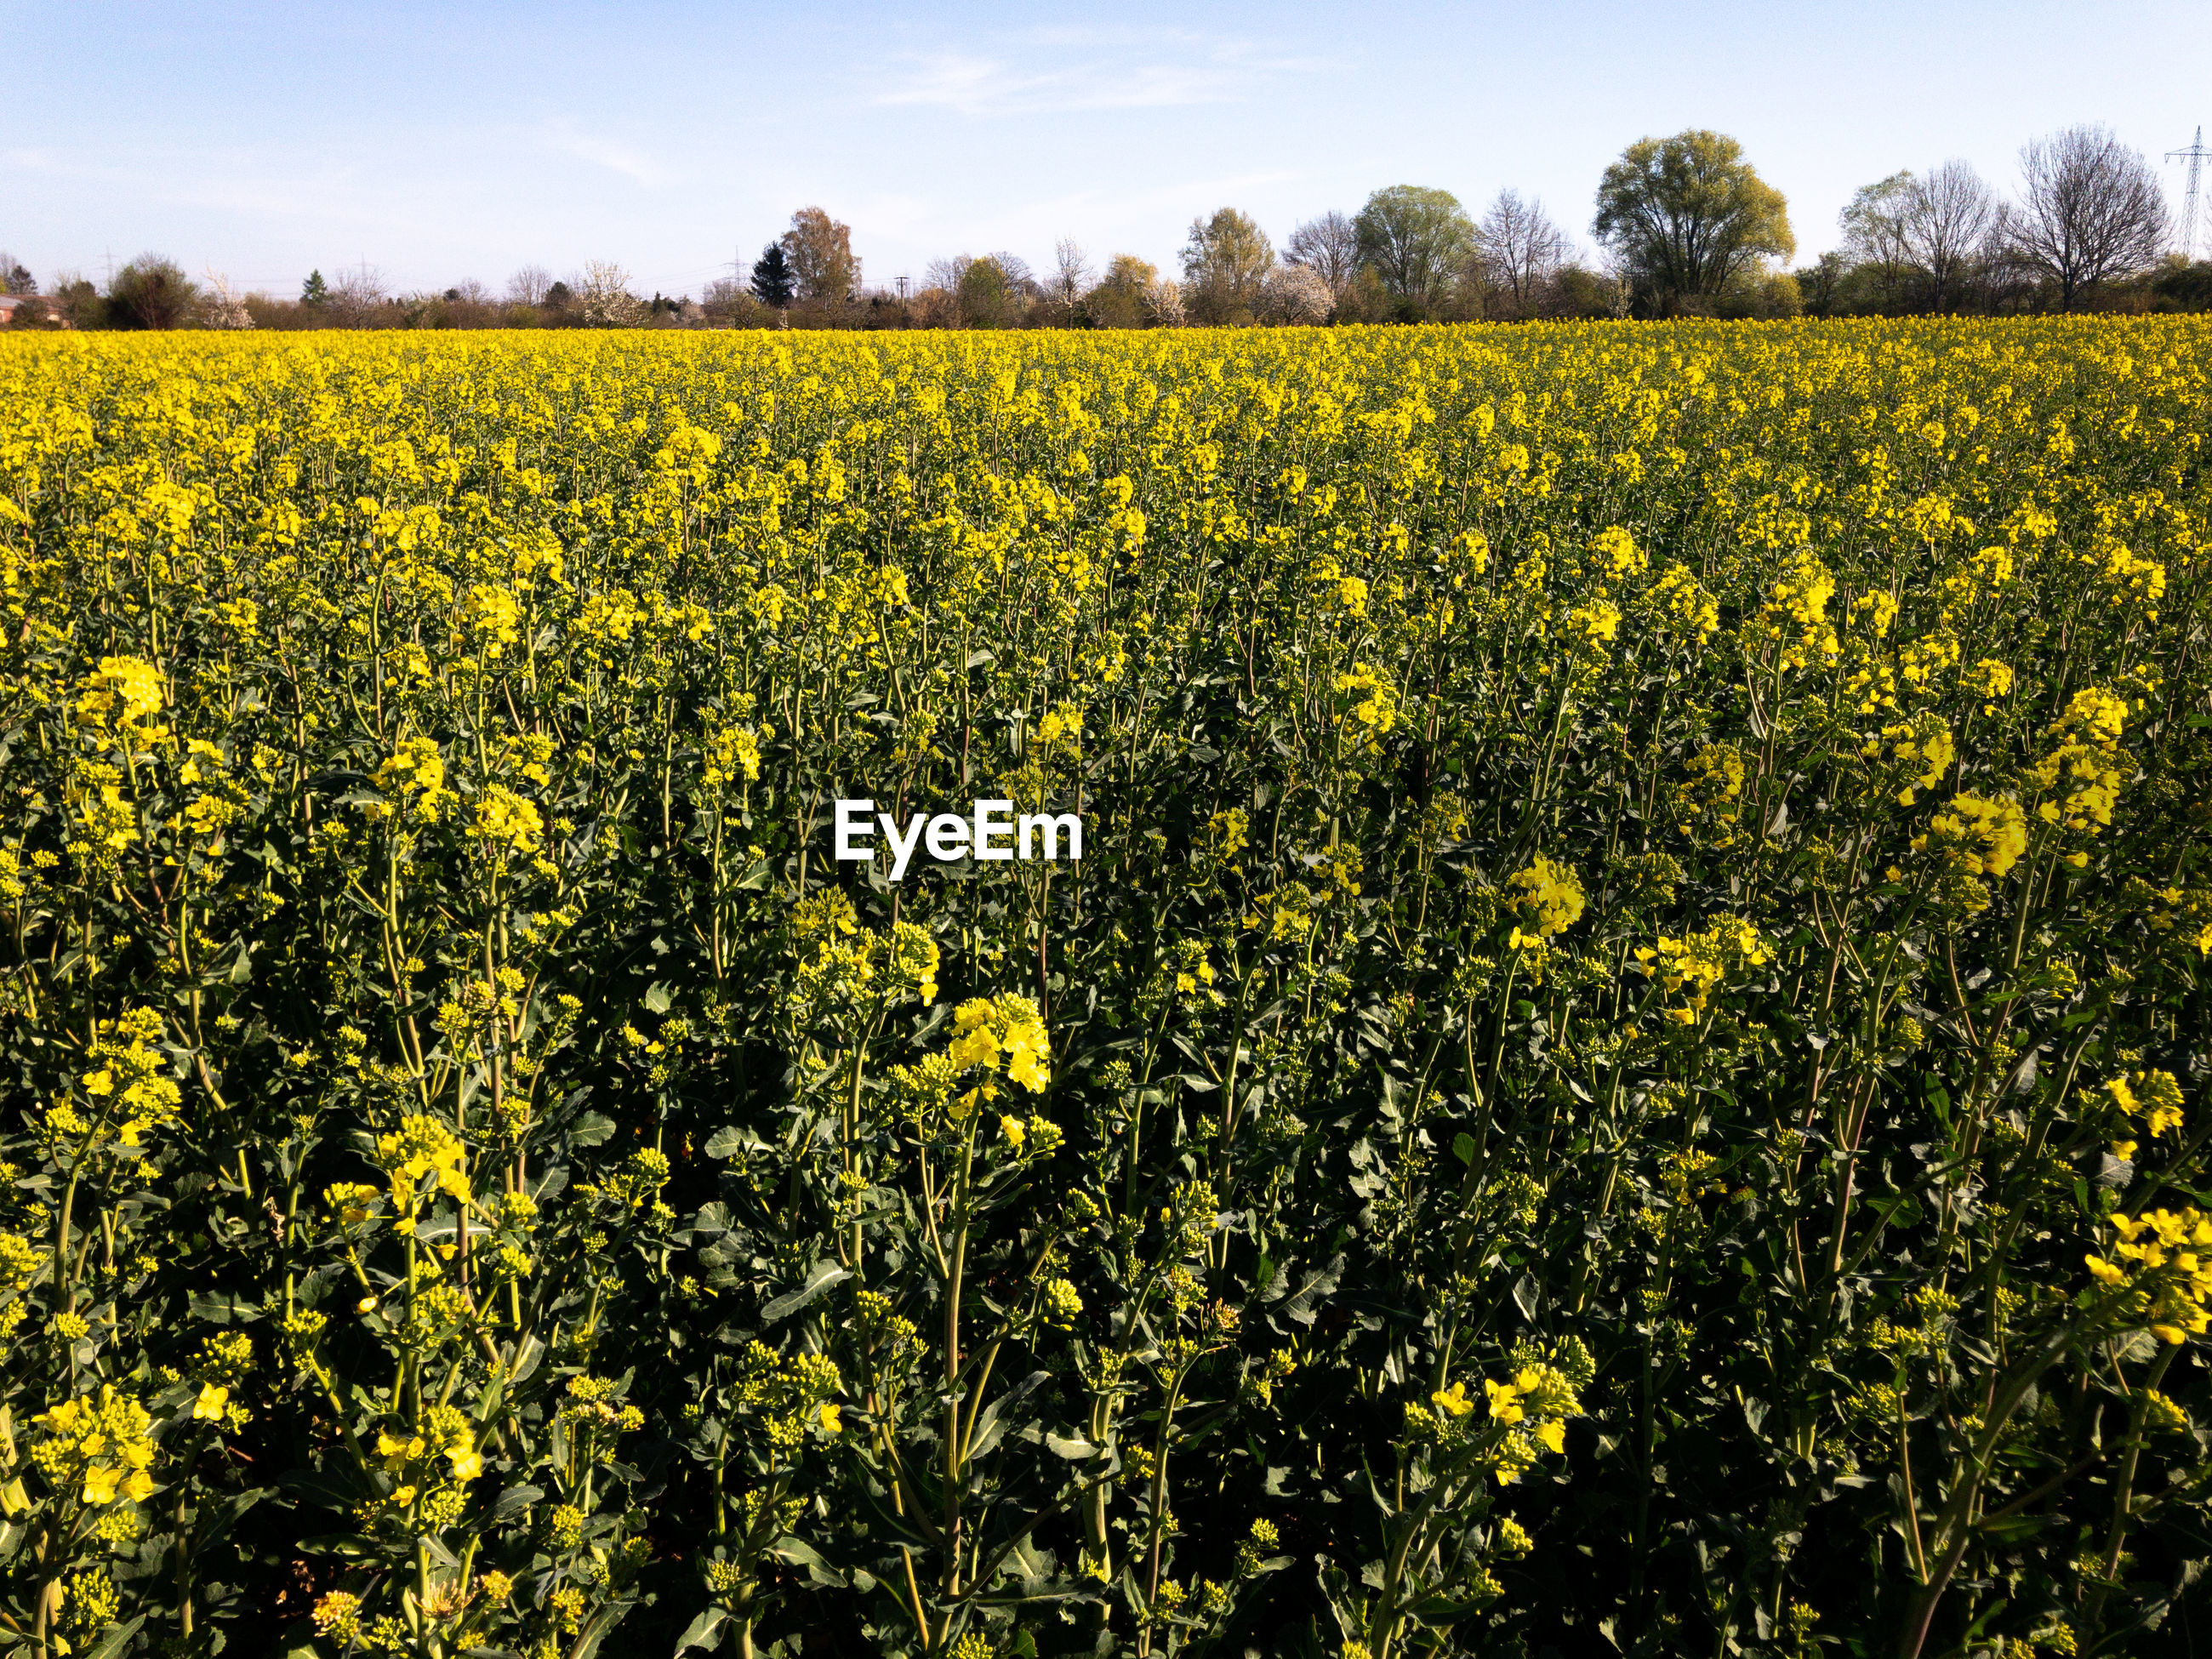 SCENIC VIEW OF OILSEED RAPE FIELD AGAINST YELLOW FLOWERS